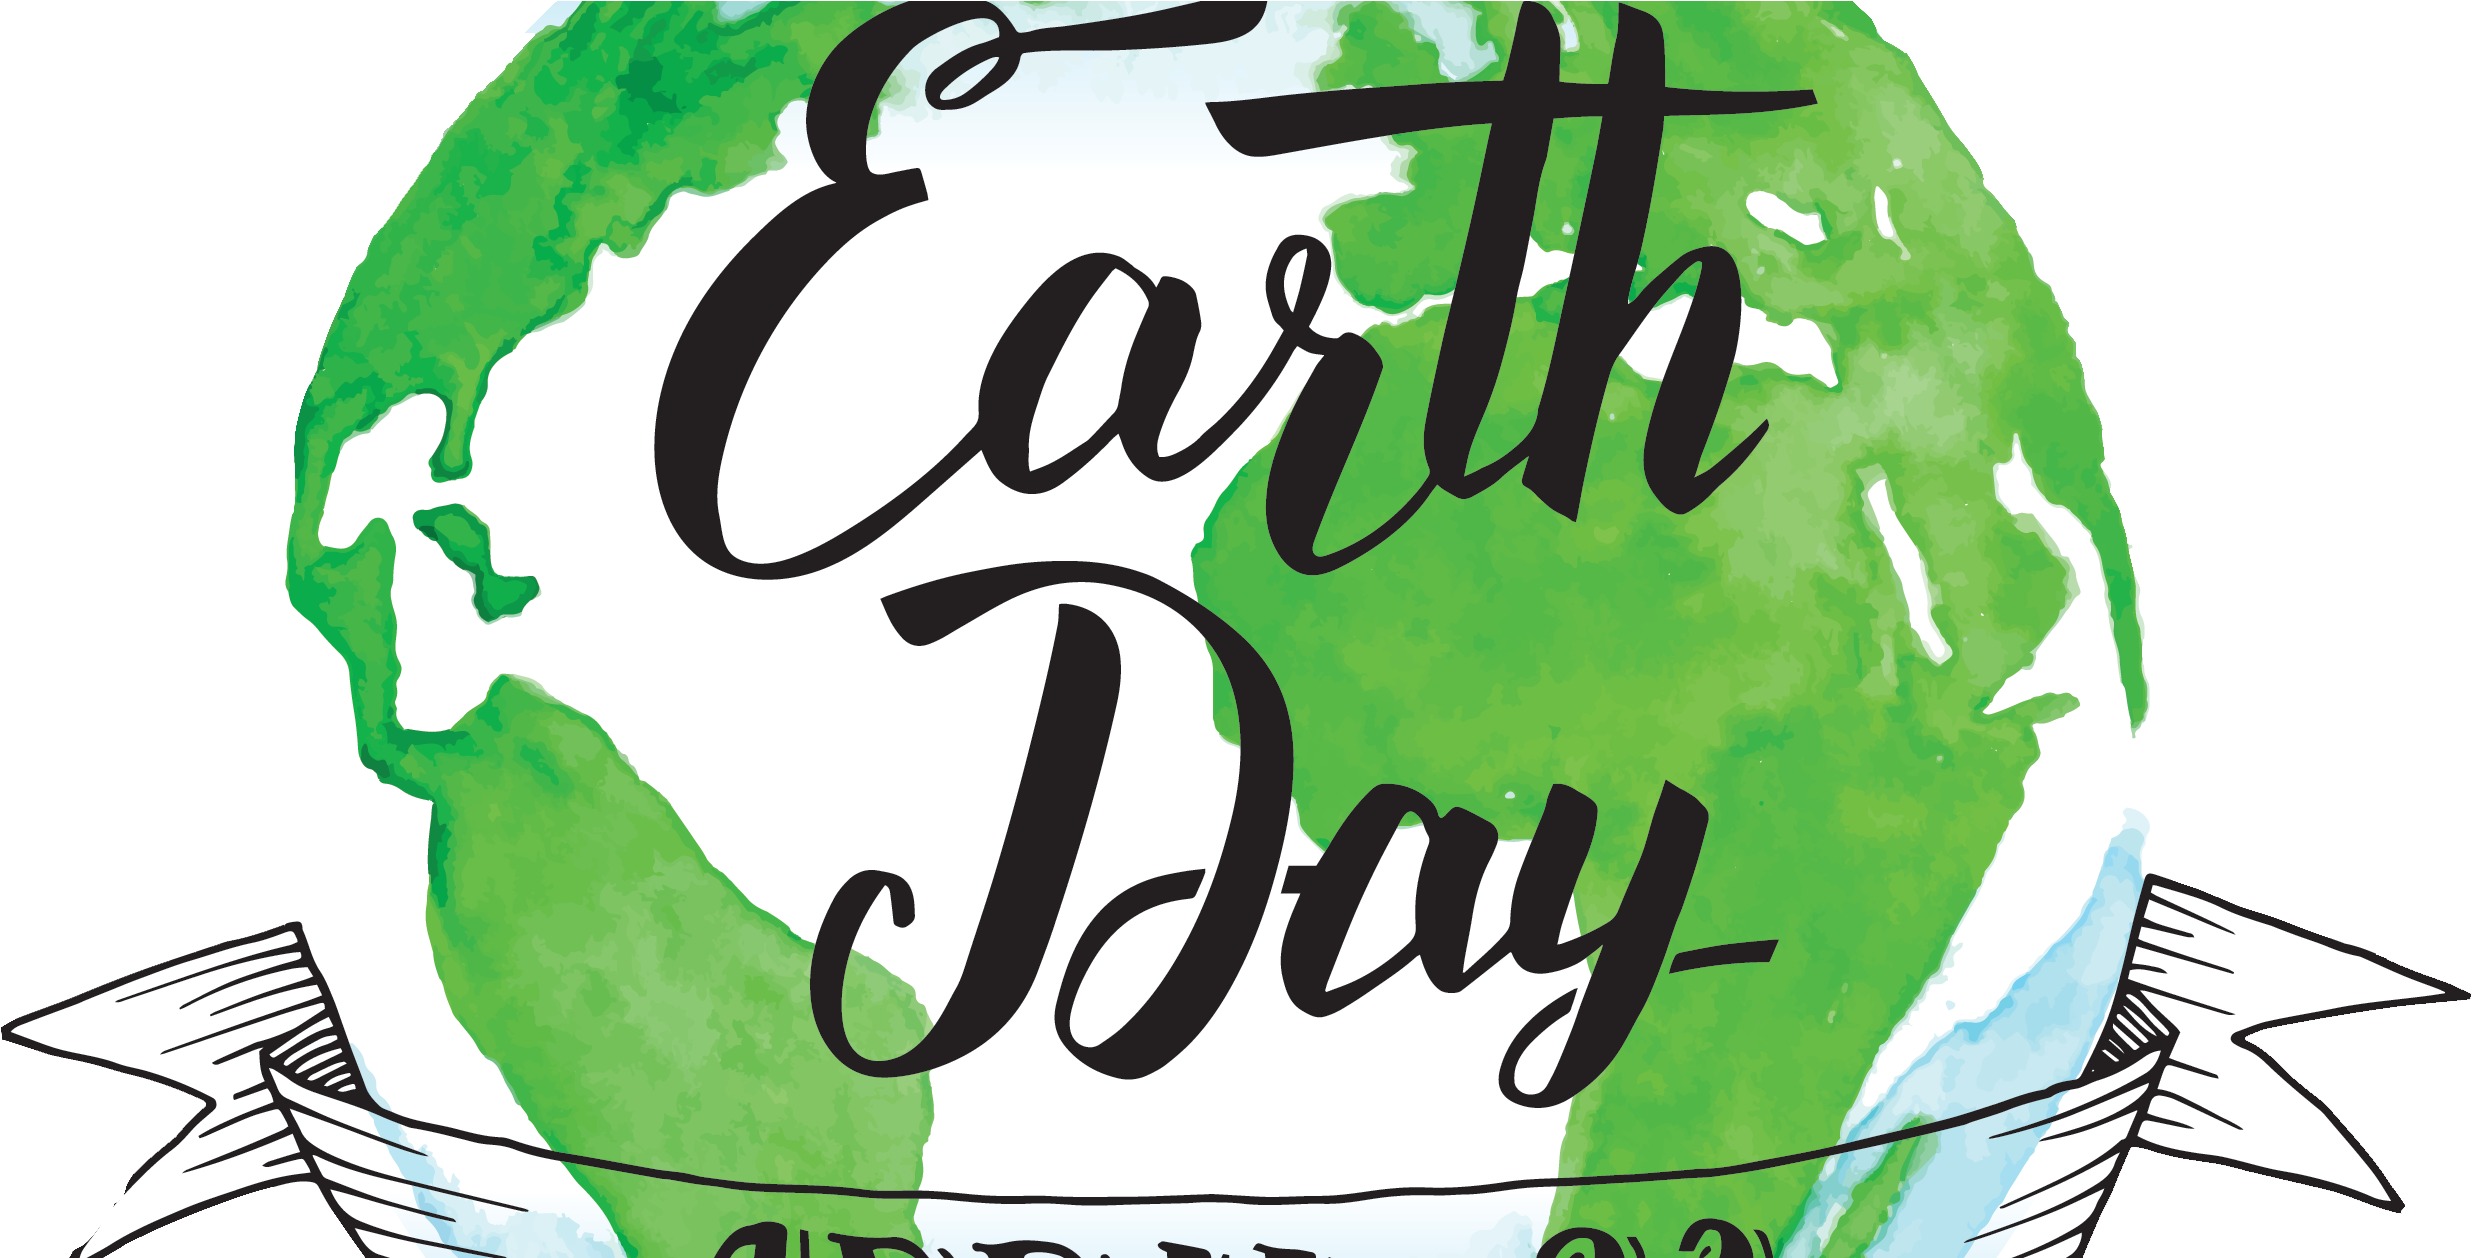 Since 1970 - Real Estate Earth Day (2514x1257)